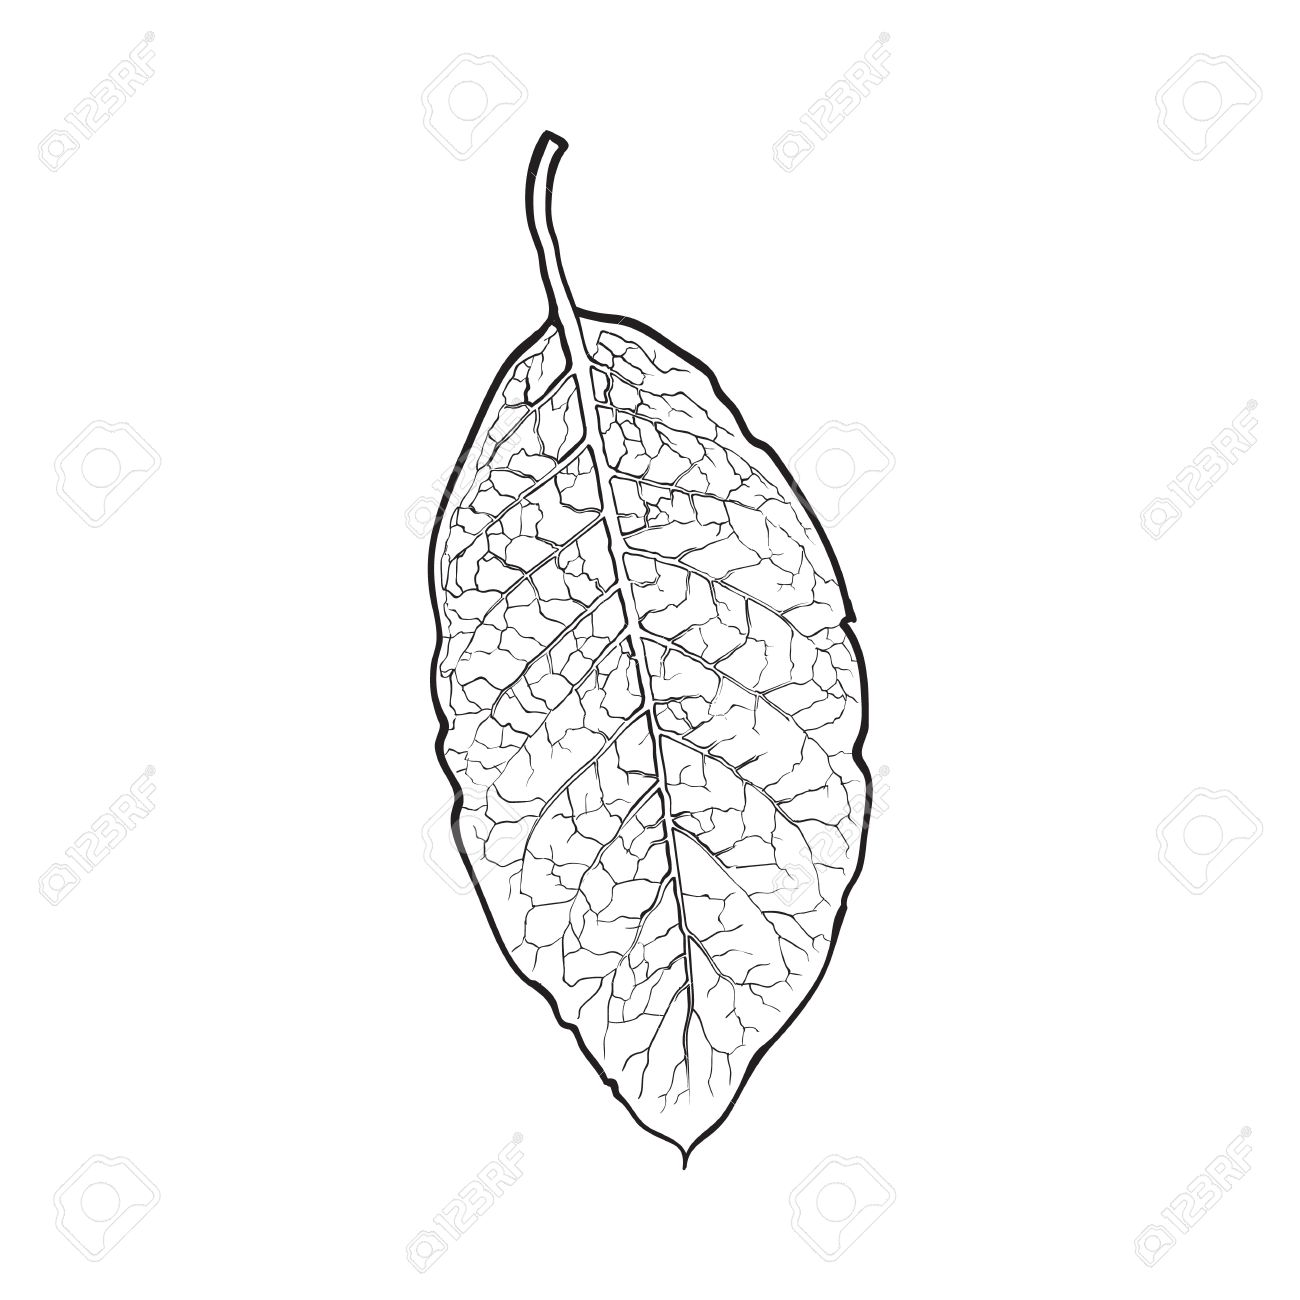 1300x1300 Hand Drawn Dry Tobacco Leaf, Sketch Vector Illustration Isolated